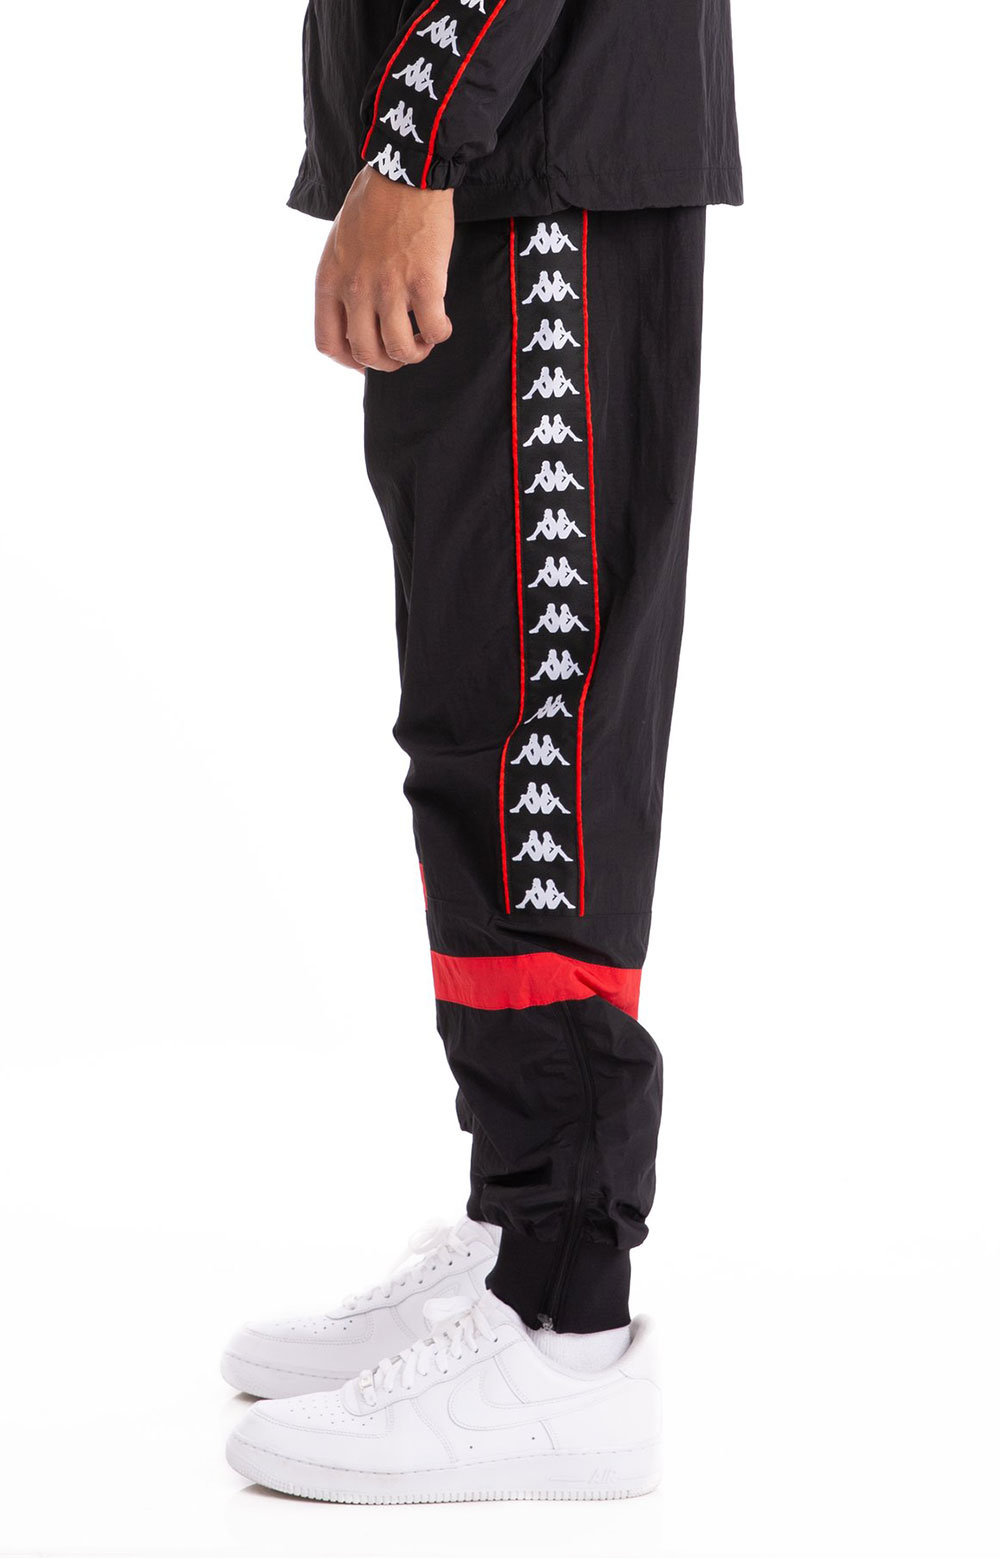 222 Banda Braka Woven Pants - Black/Red 2